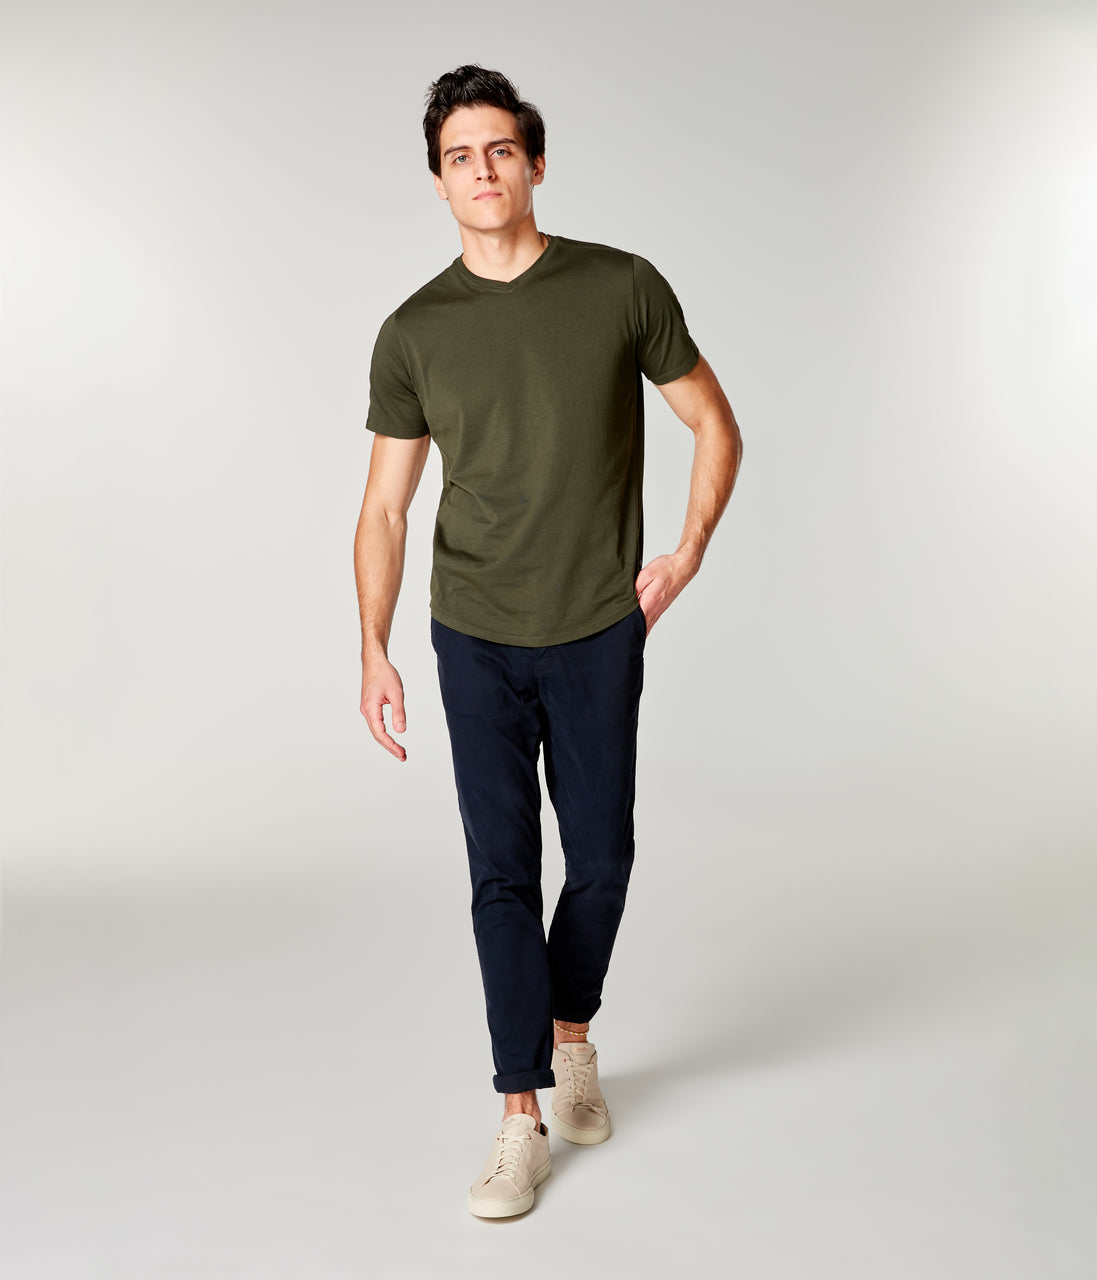 Premium Cotton Jersey Hi Vee Tee - Rifle Green - Good Man Brand - Premium Cotton Jersey Hi Vee Tee - Rifle Green